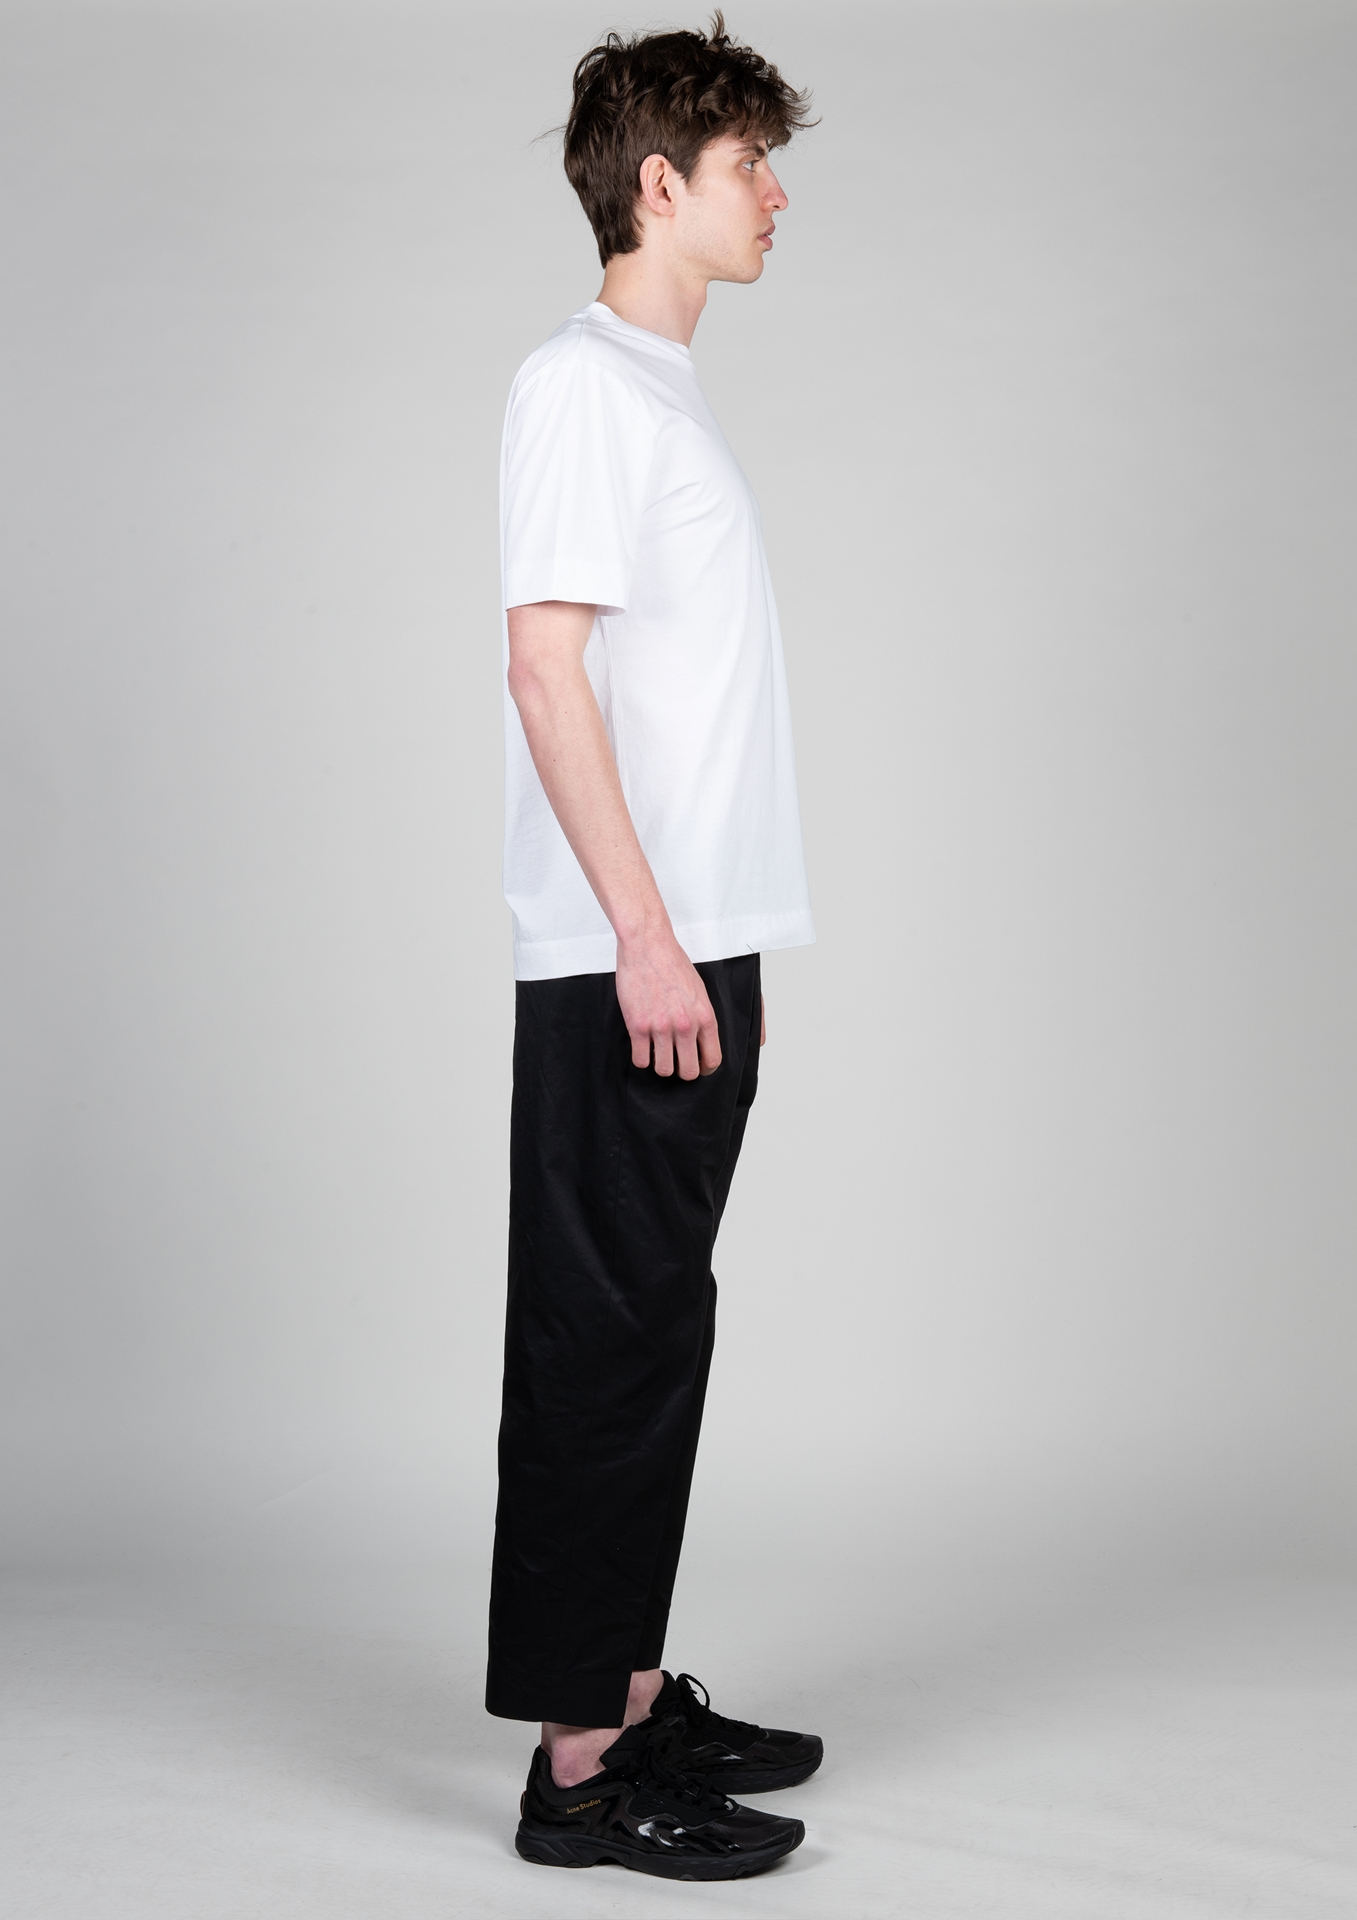 H T-Shirt AAMTS0225 Größe: M Farbe: white